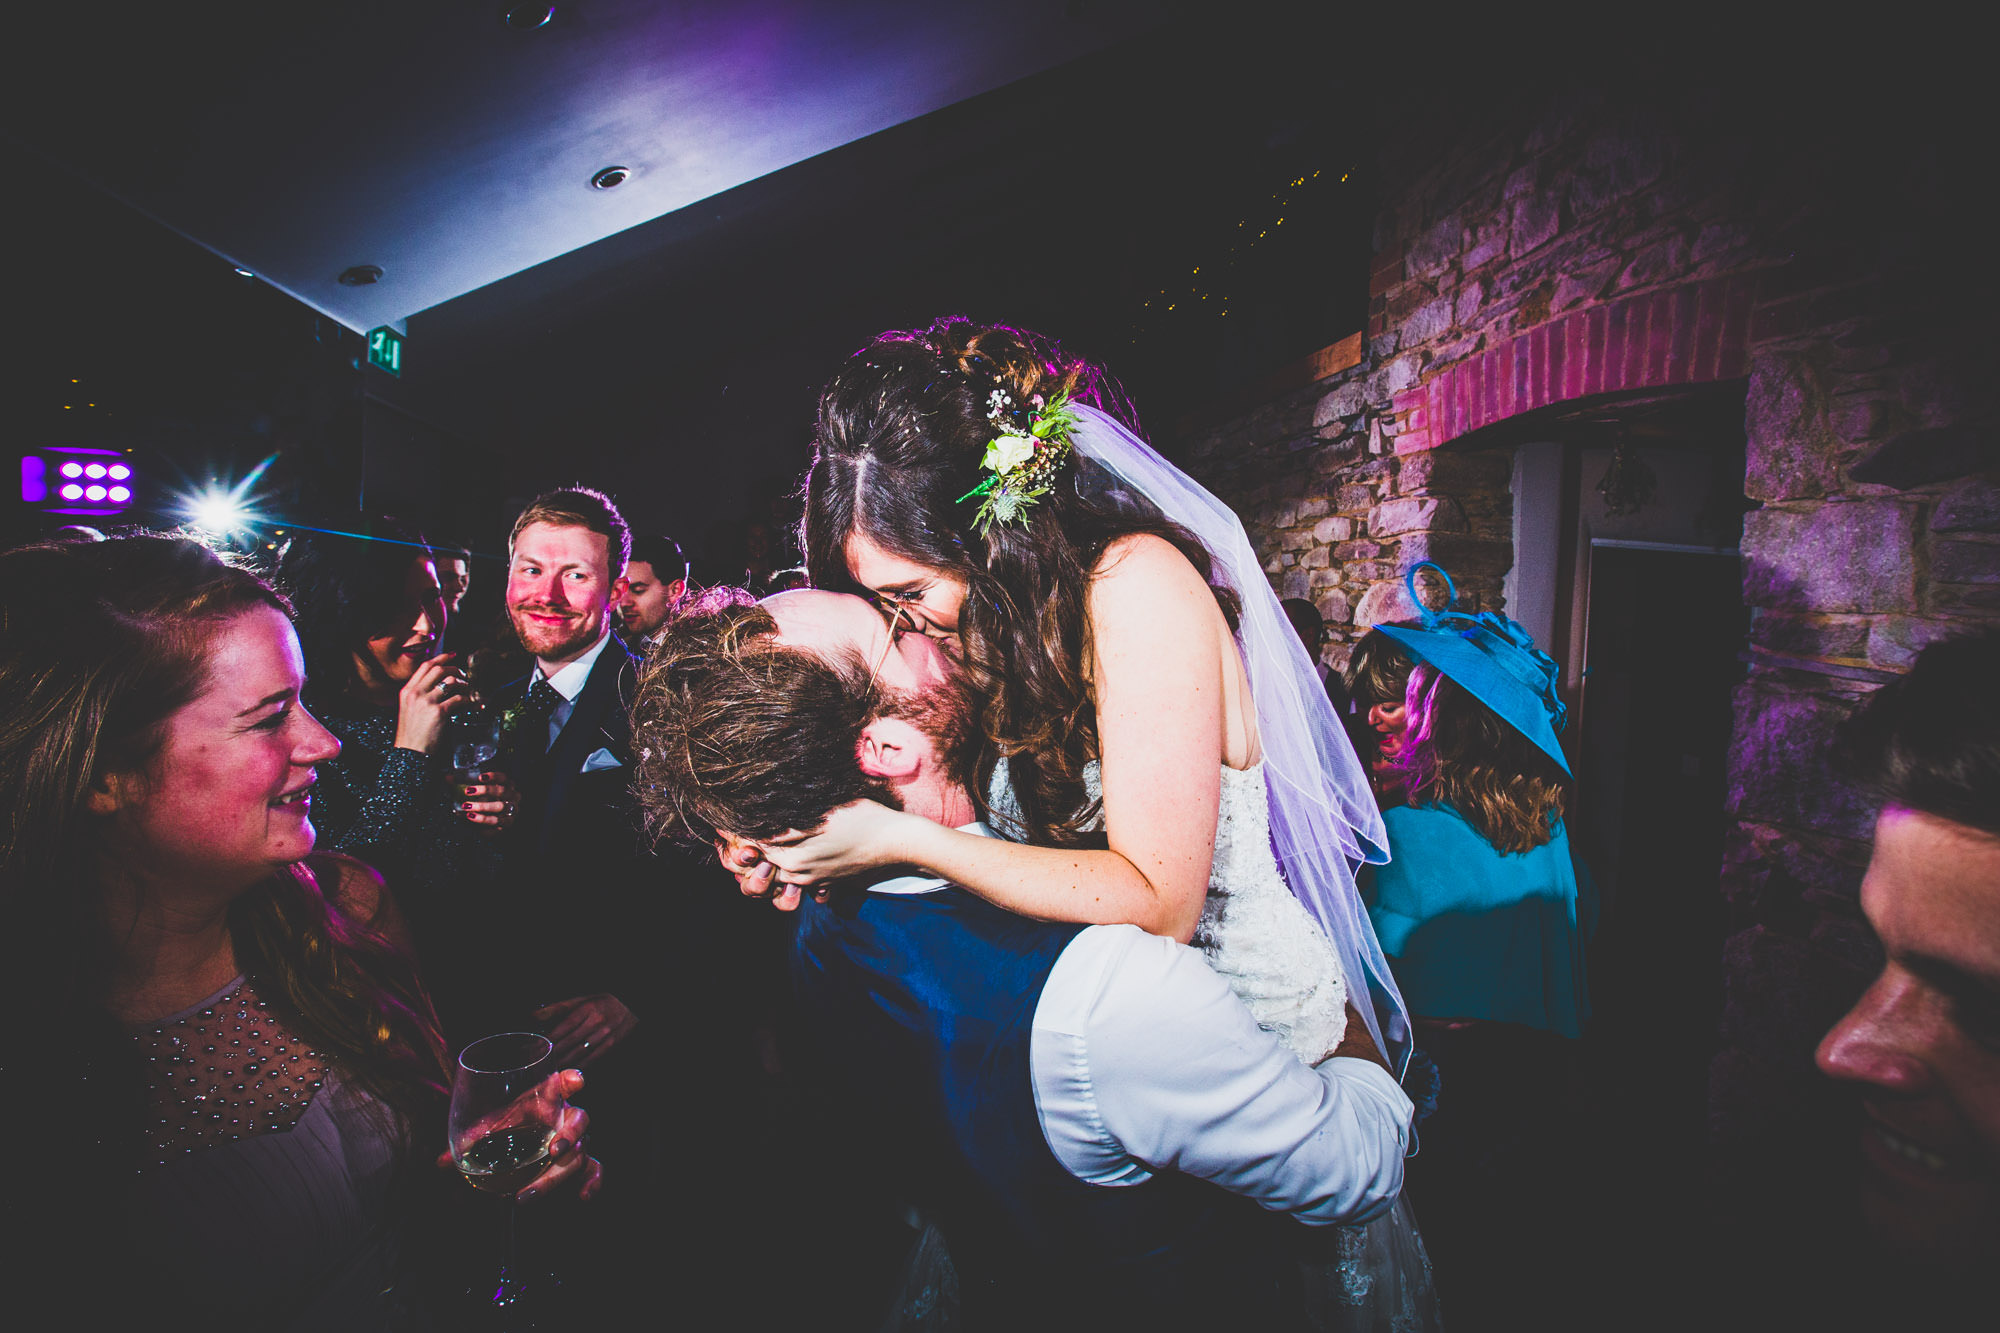 The bride and groom have an emotionally charged kiss on their wedding day